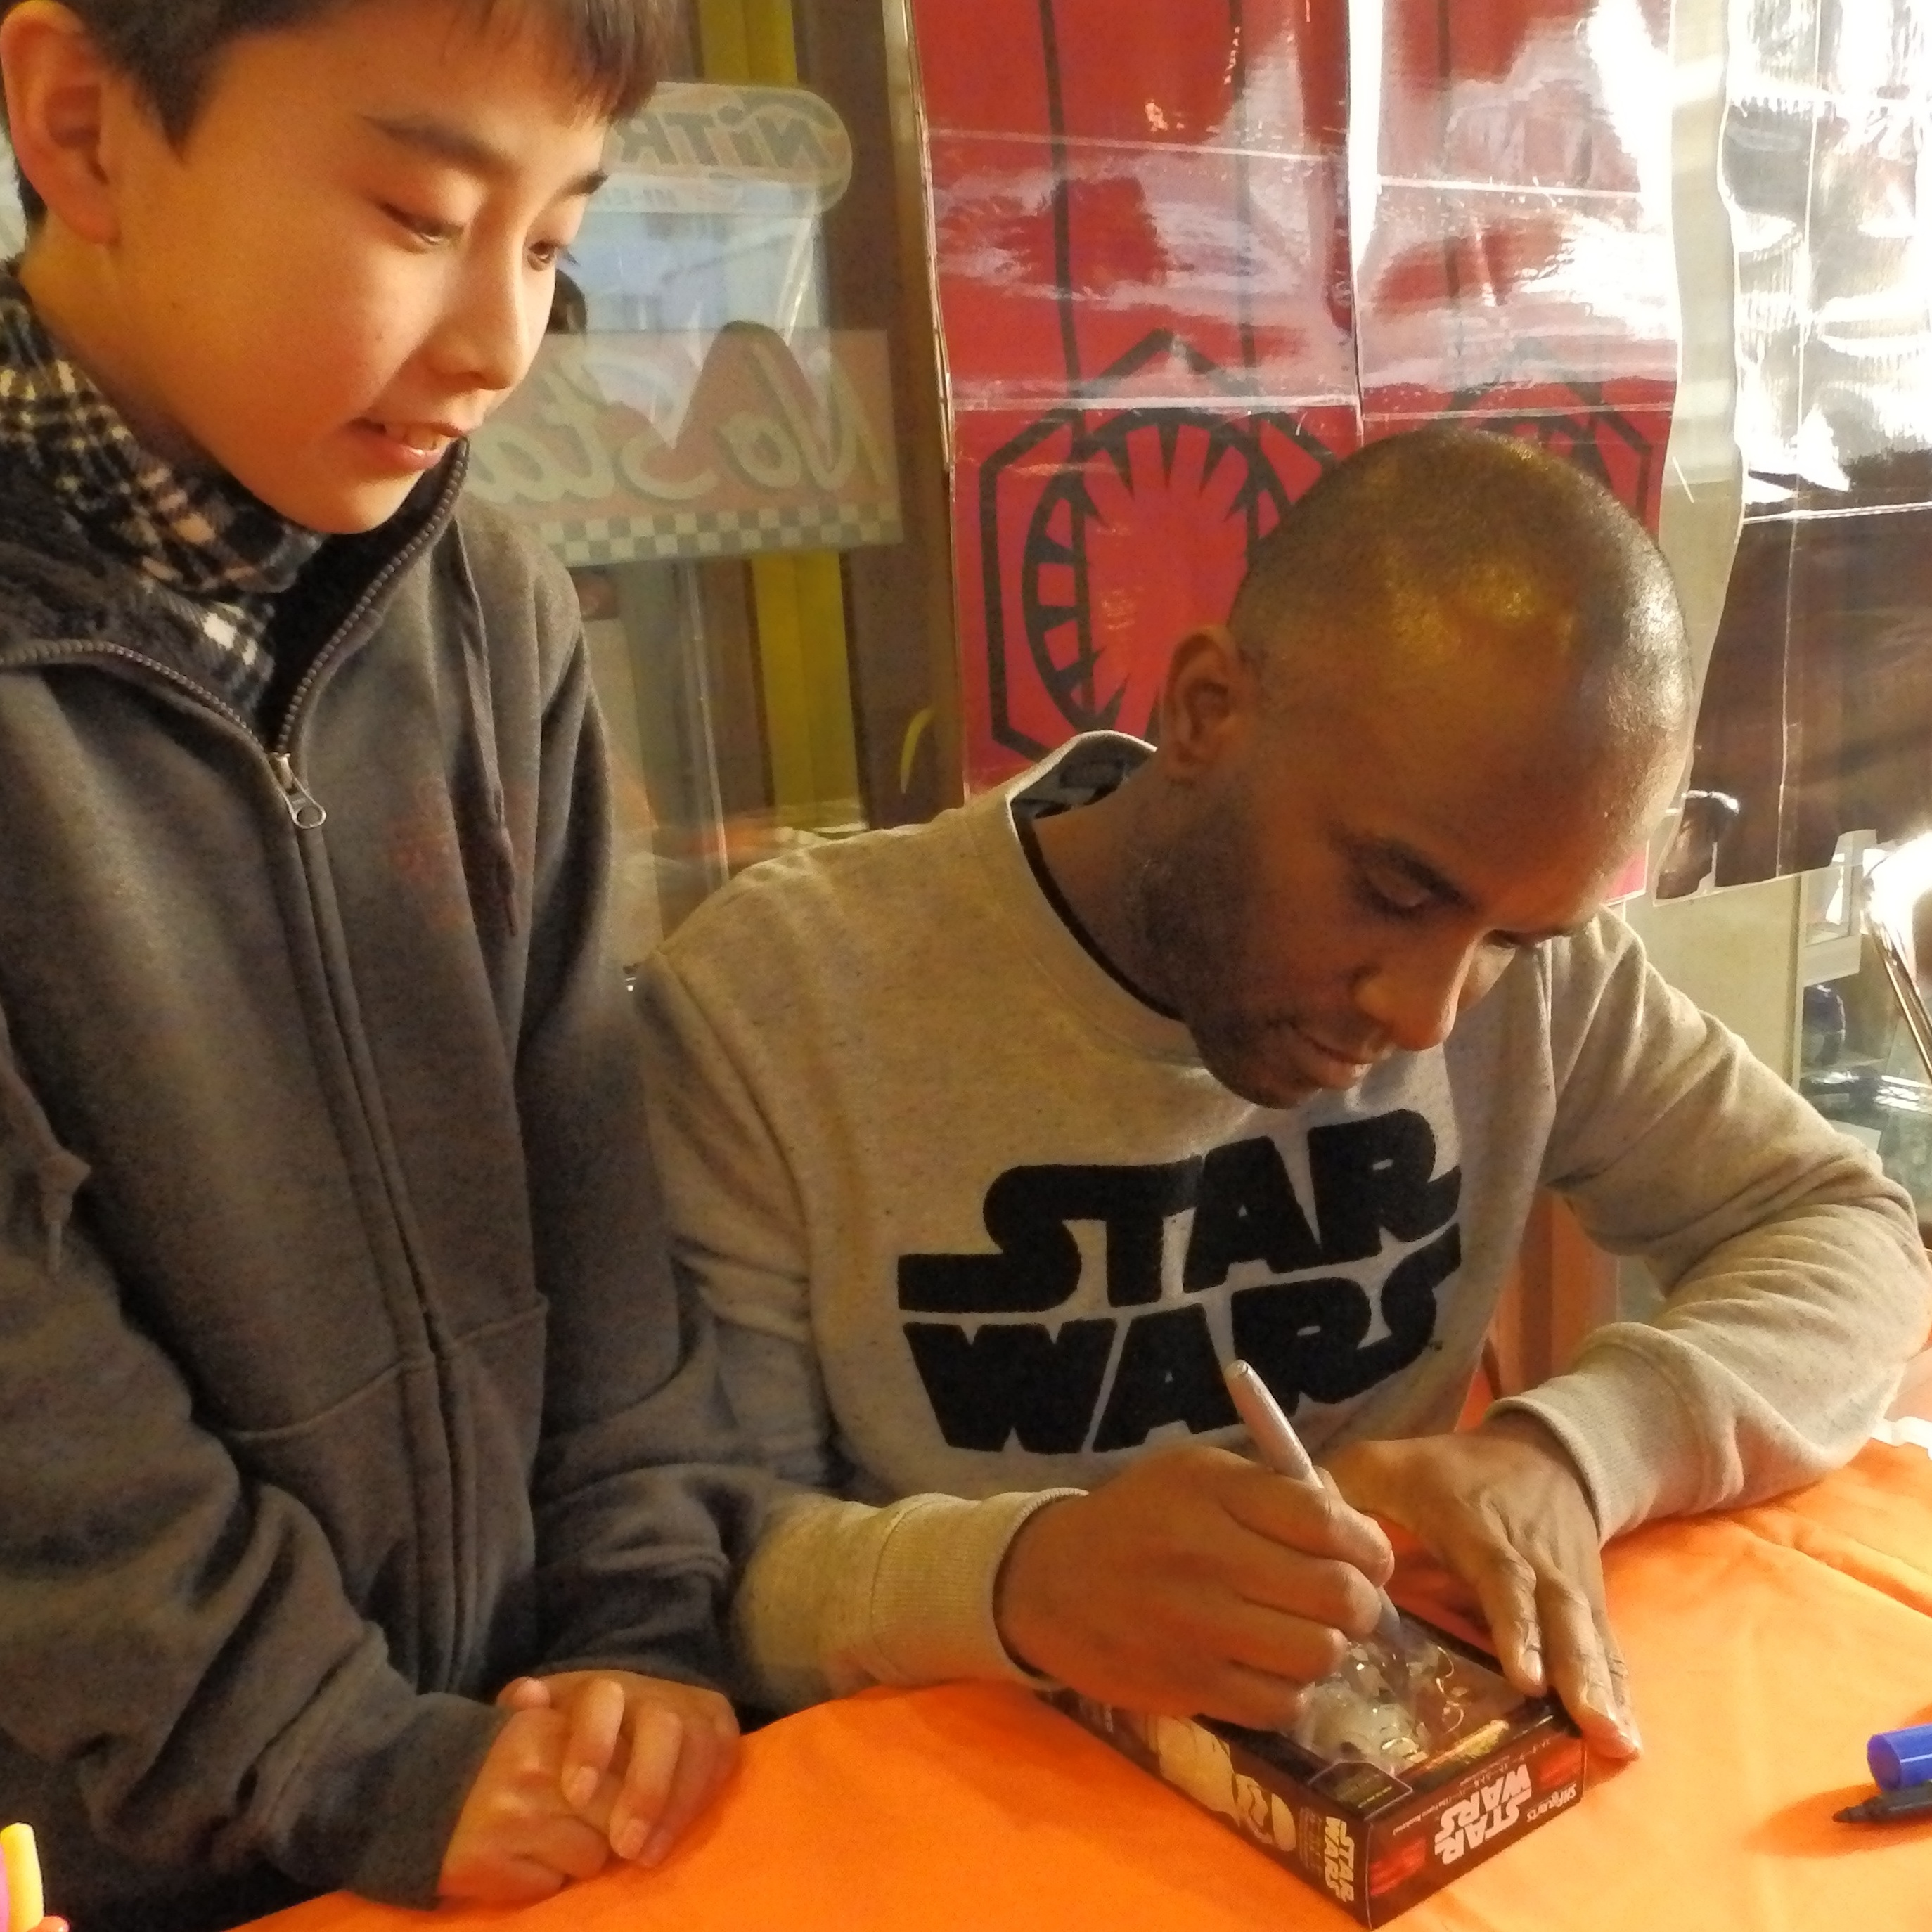 Phoenix James - First Order Stormtrooper Actor - Autograph Signing Tour in Tokyo, Japan 15